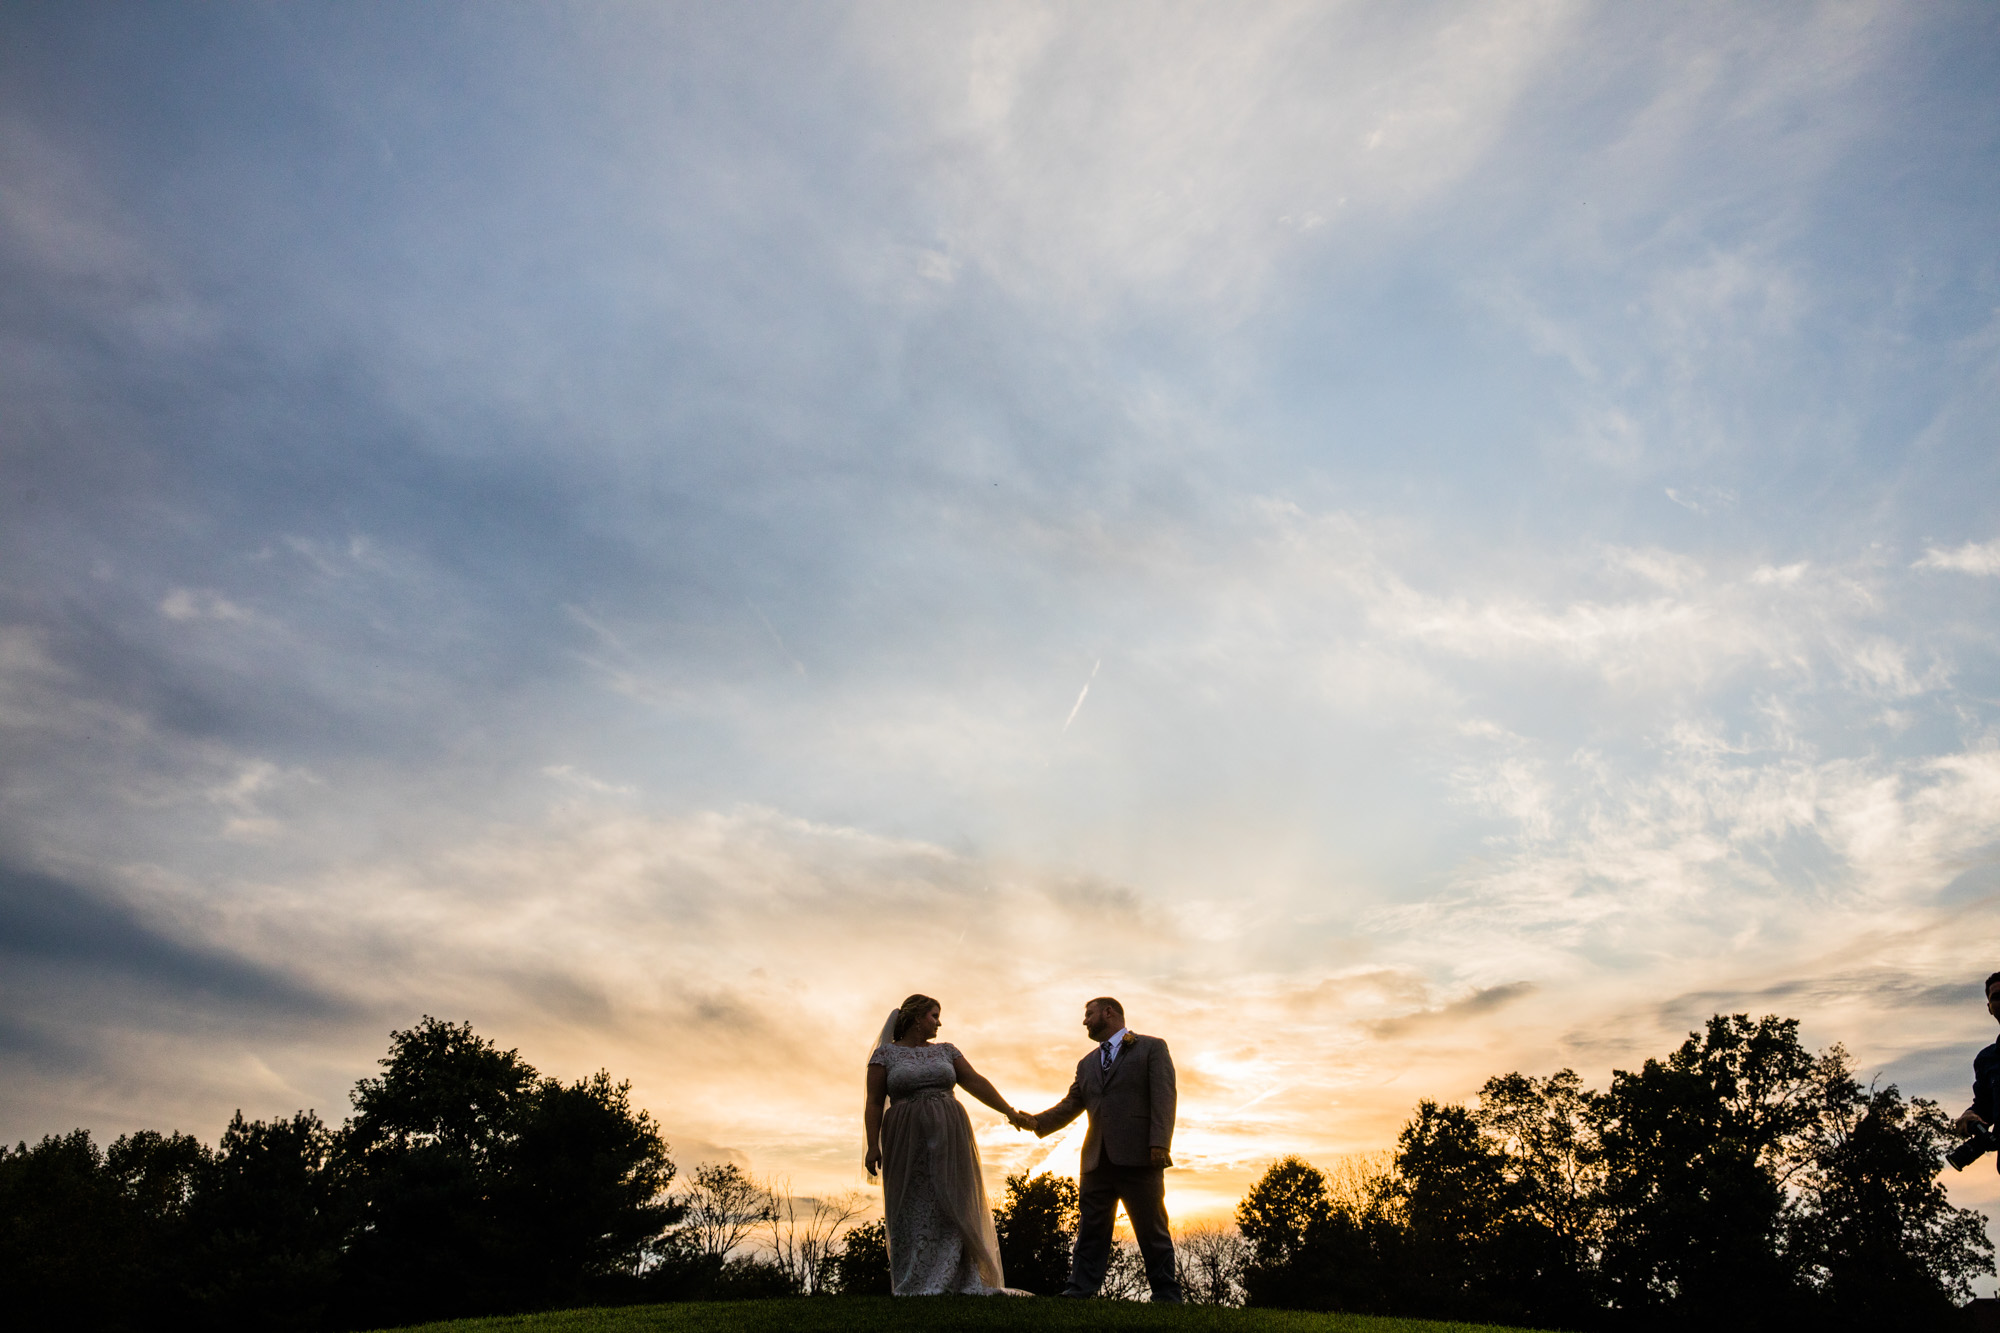 LOVESTRUCK PICTURES NORMANDY FARMS WEDDING - 075.jpg